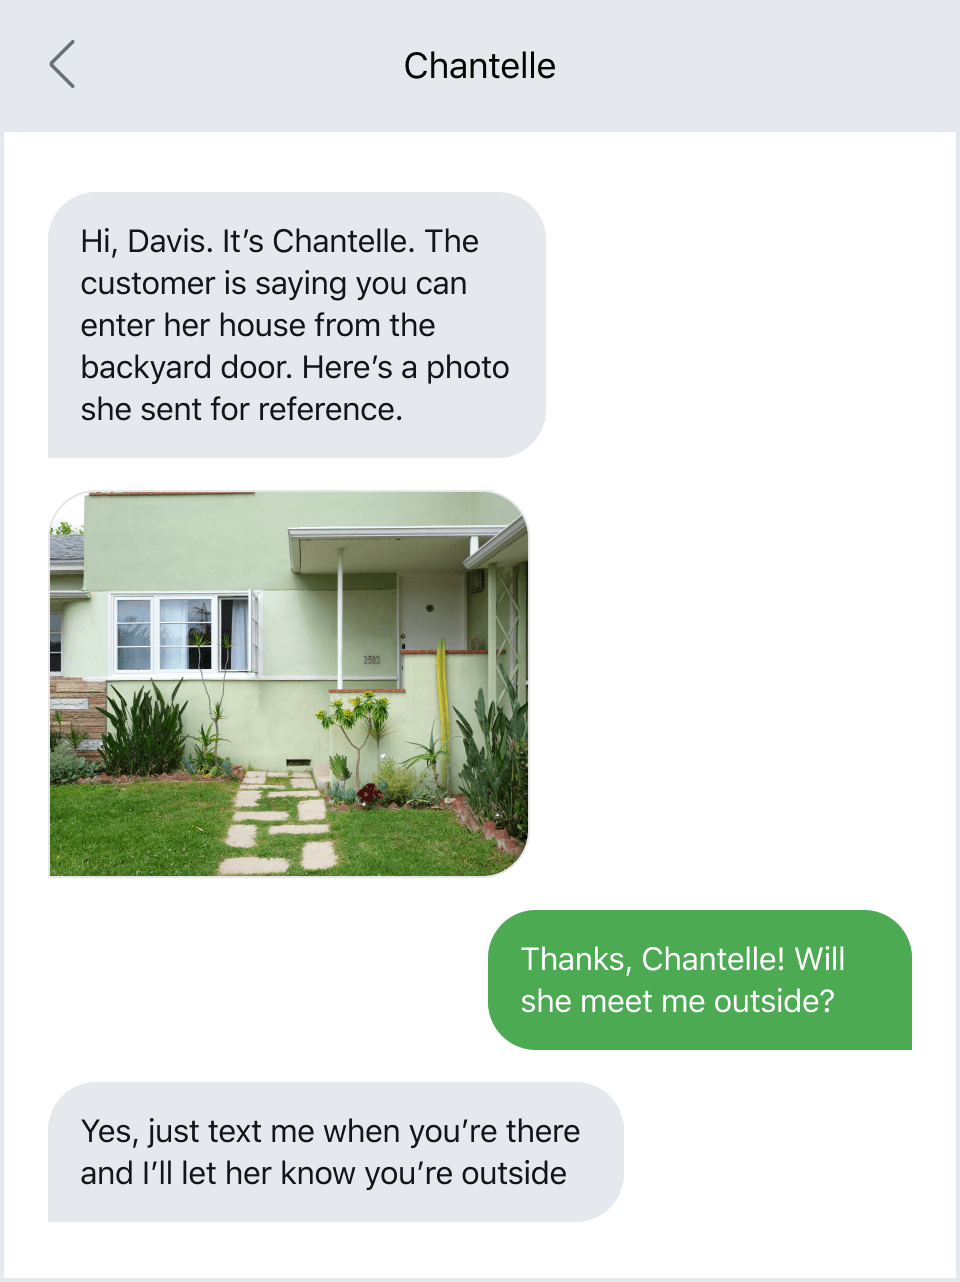 Example of sending location details with pictures via text